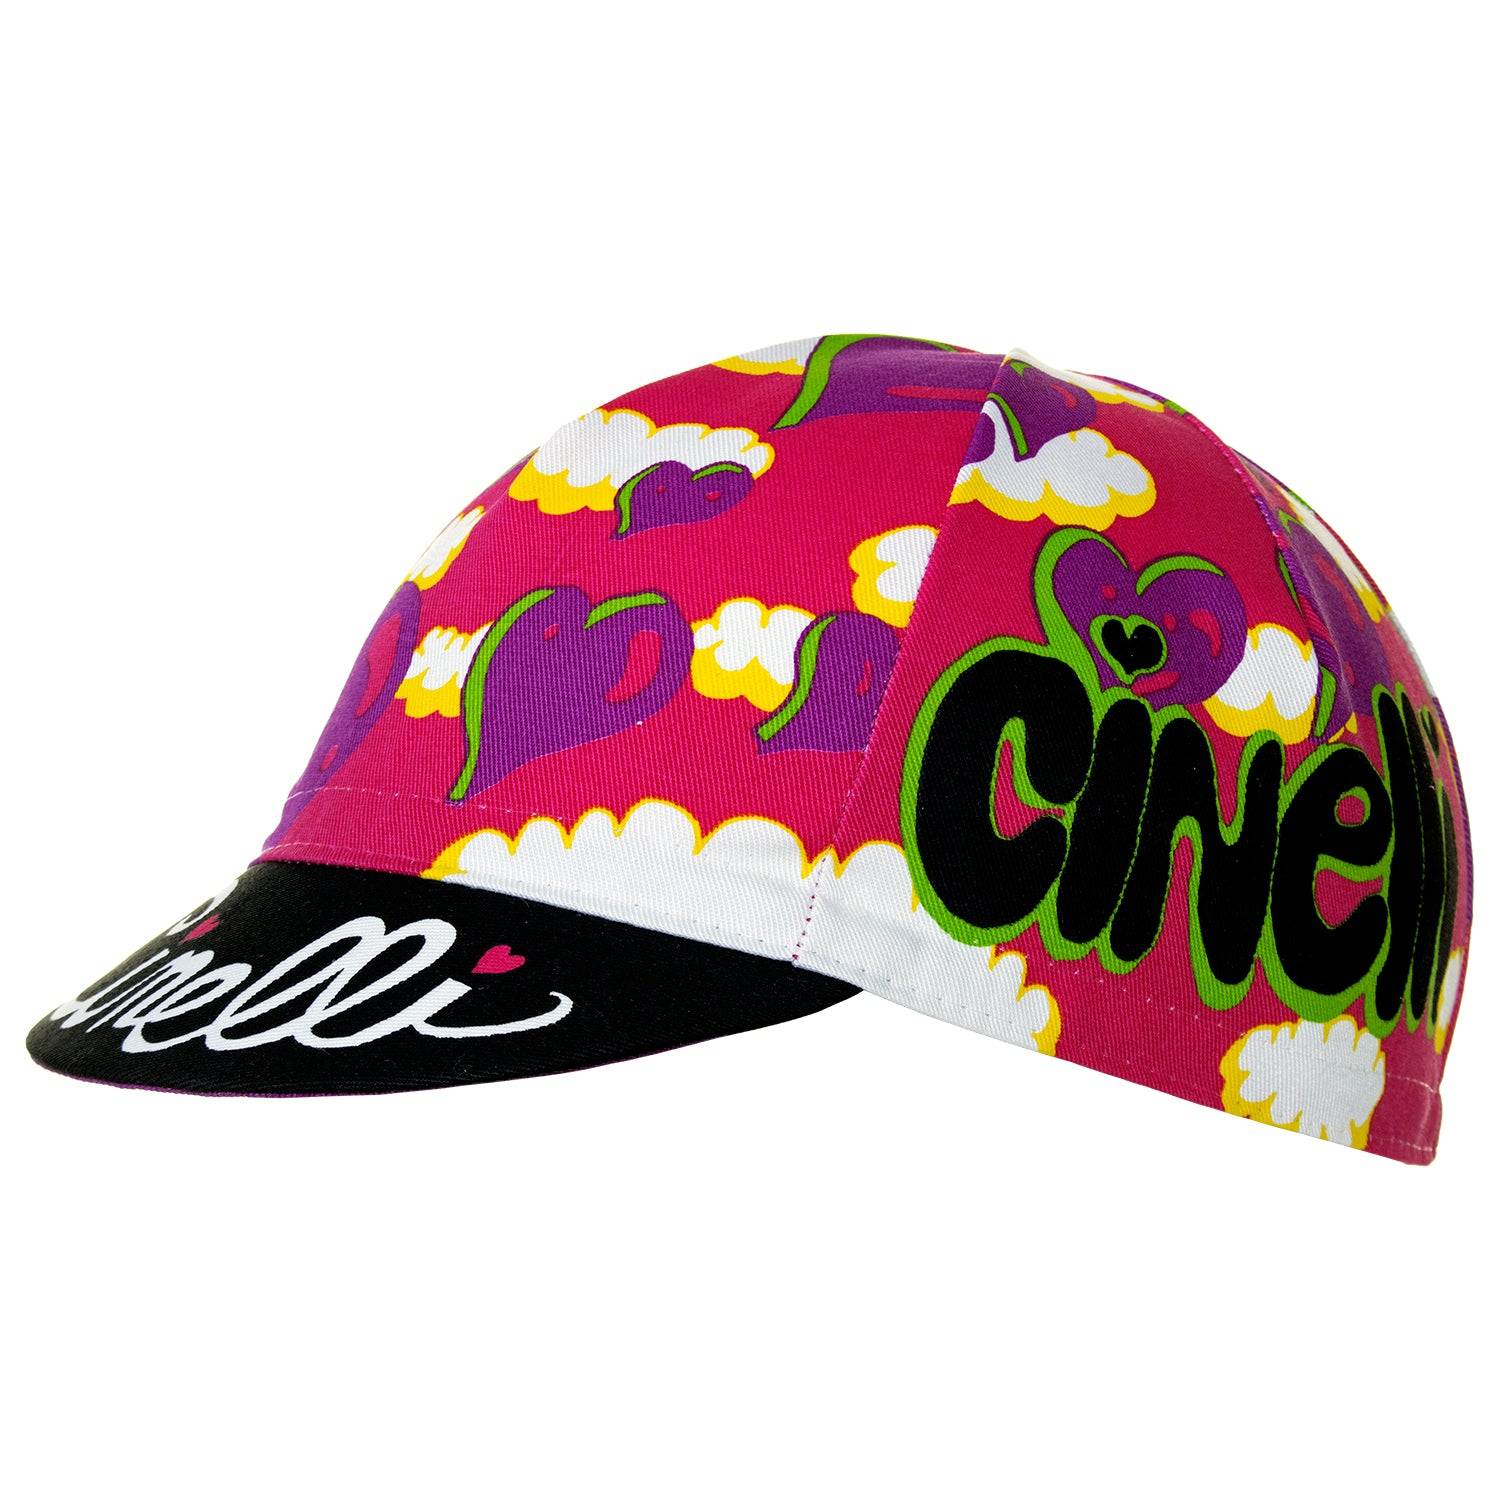 Side view of the Cinelli Ana Benaroya Heart Cotton Cycling Cap. See the Cinelli logos on the top of the peak and on each side in amongst that stunning pink, purple, white and black design.